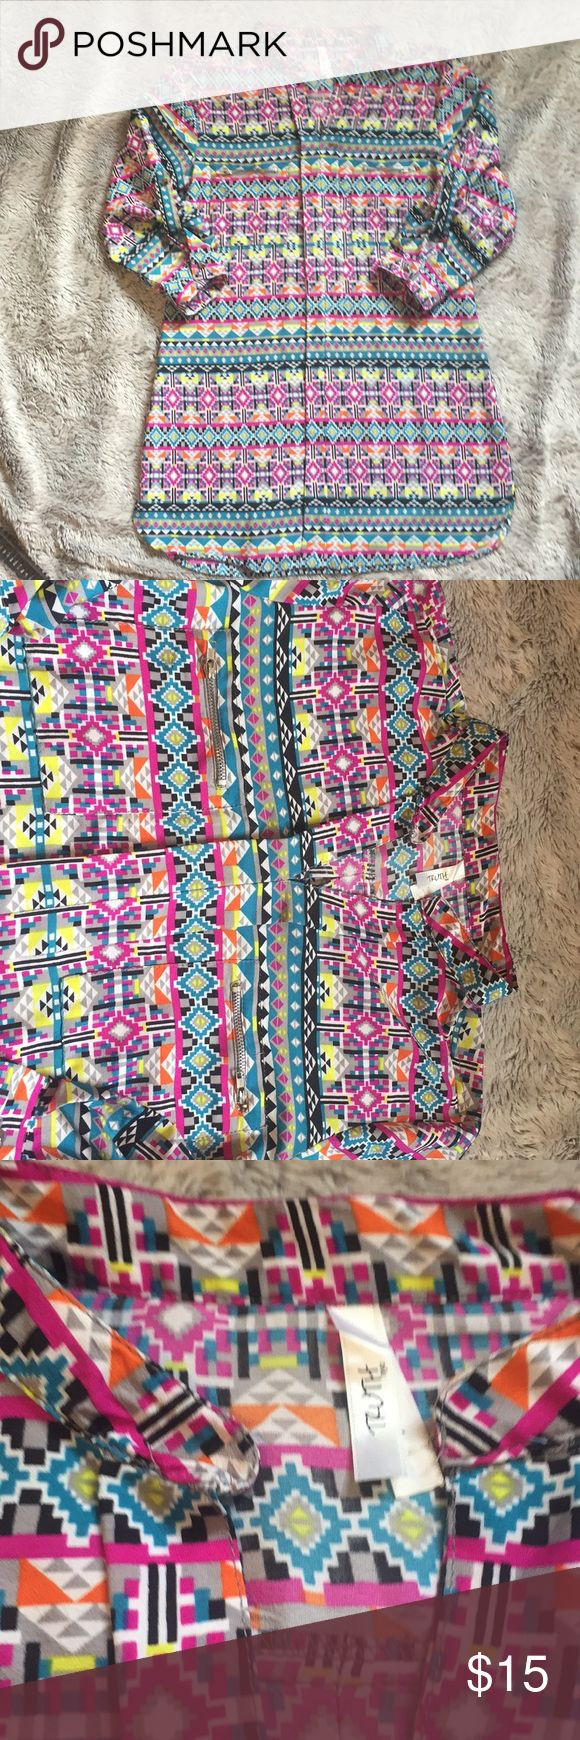 3/4 sleeve tribal tunic Super cute tunic style 3/4 sleeve tribal shirt. 100% polyester. Has zippered breast pockets. Size large but fits as a S/M. Truth NYC Tops Blouses